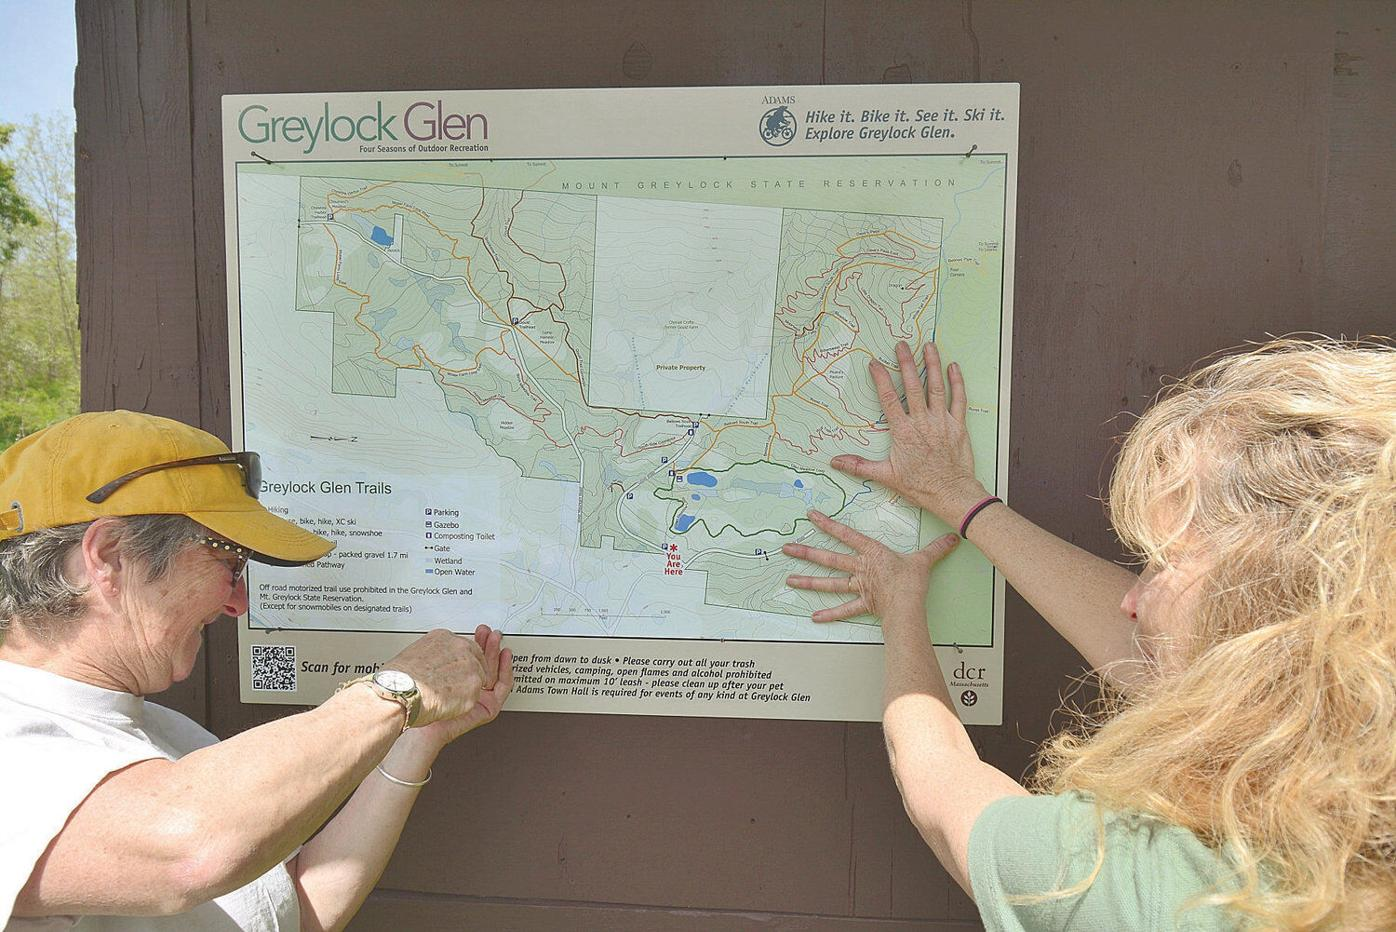 New maps detail years of trail-building at Greylock Glen